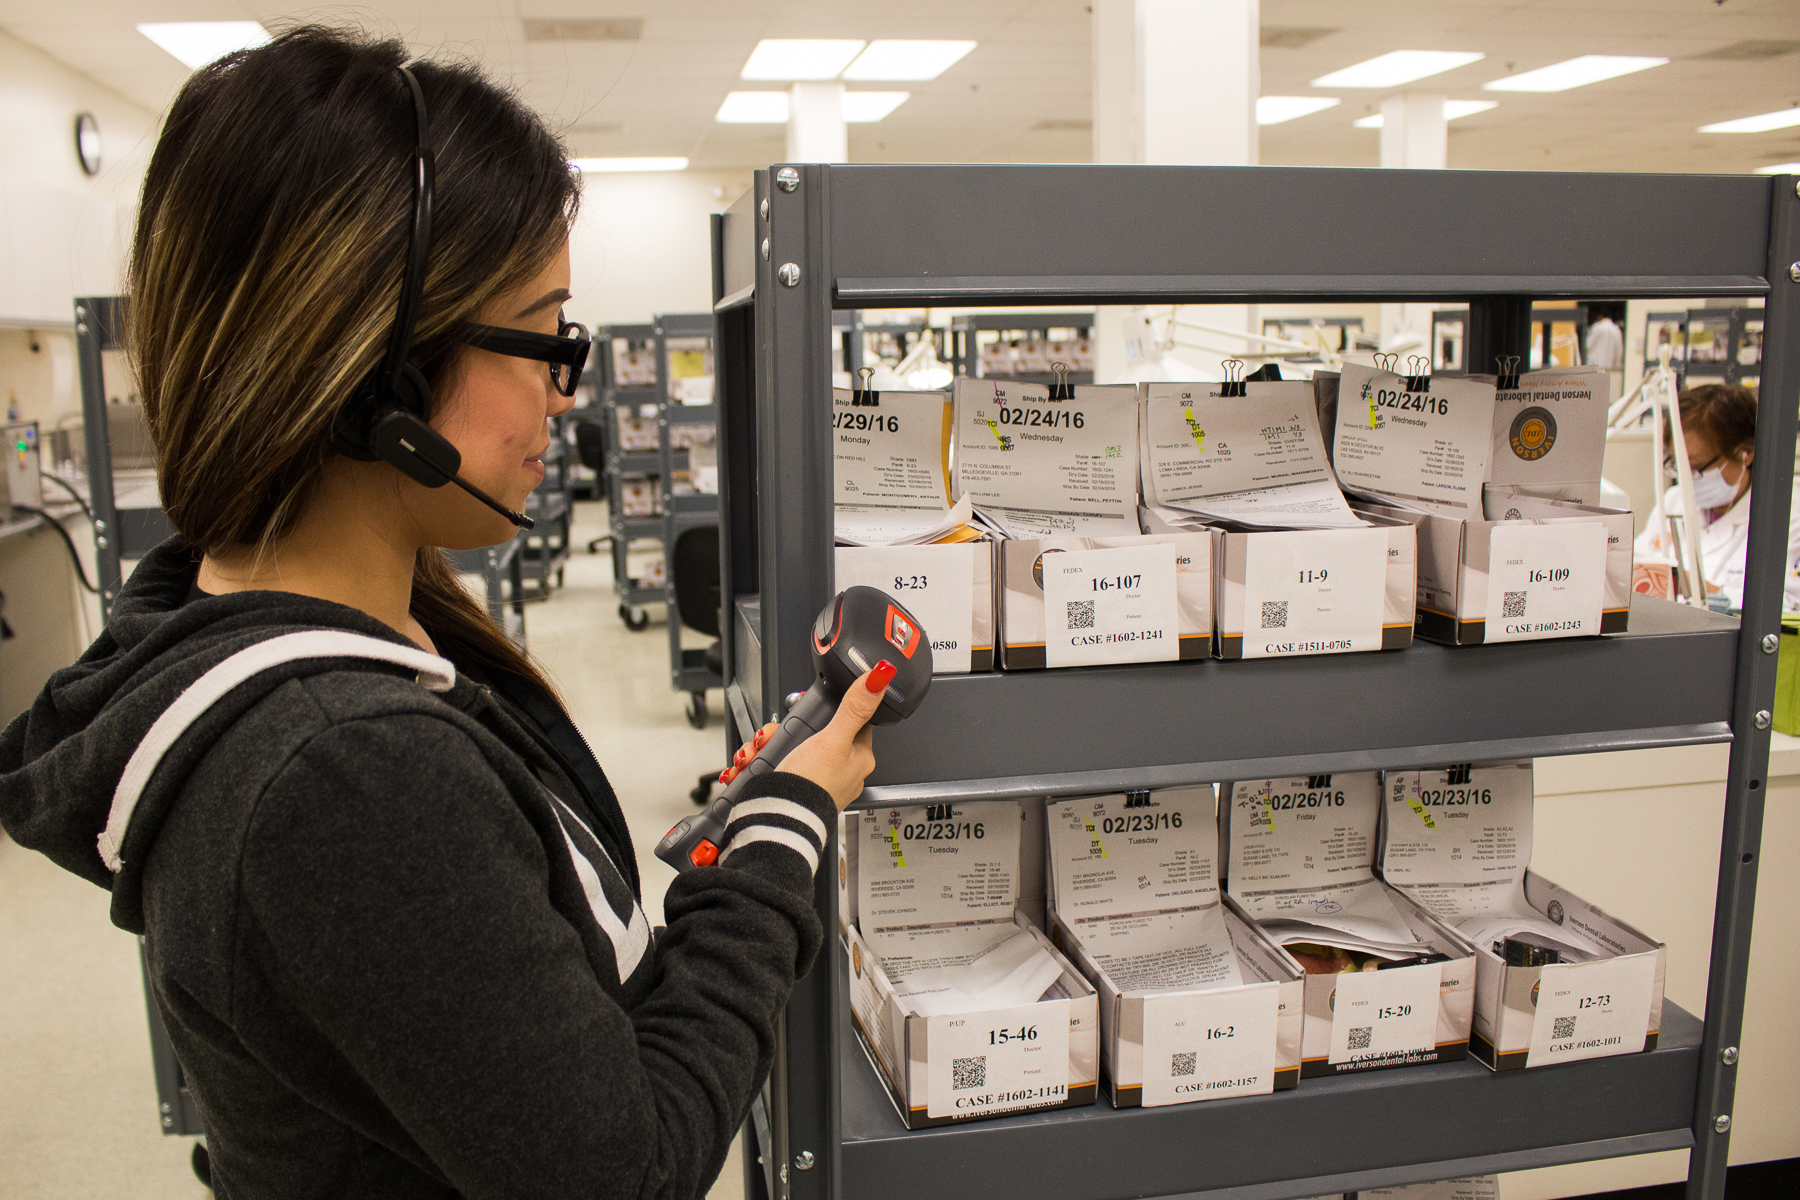 Dental cases are tracked and processed via QR codes by Iverson's logistics department